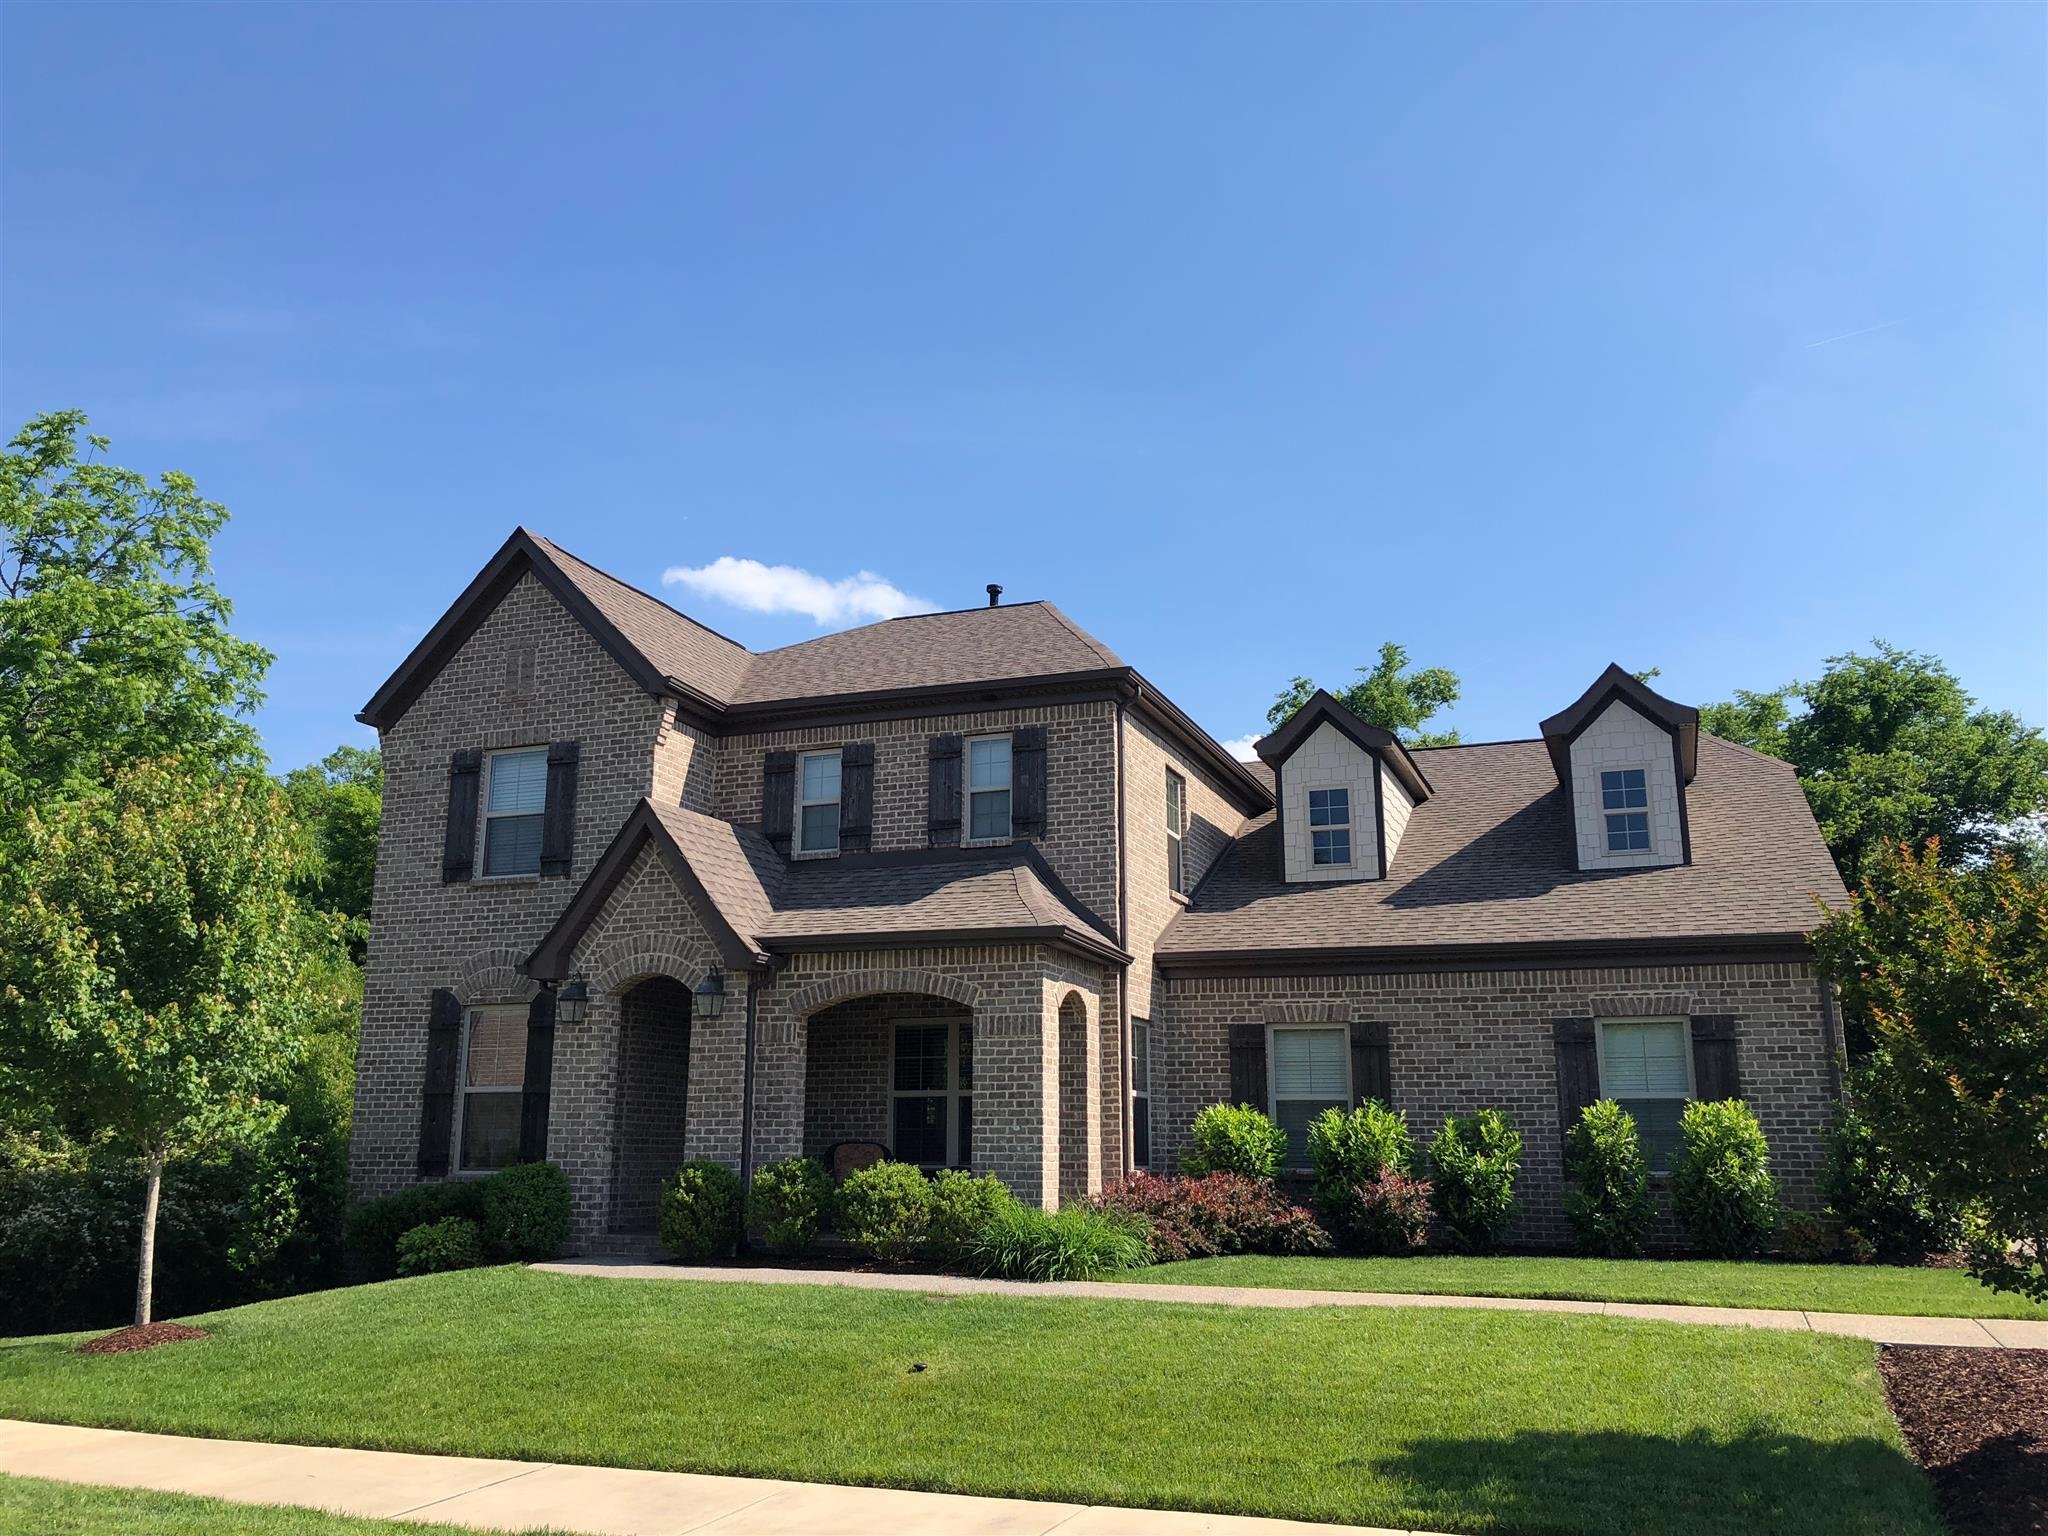 1069 Vinings Blvd, Gallatin in Sumner County County, TN 37066 Home for Sale